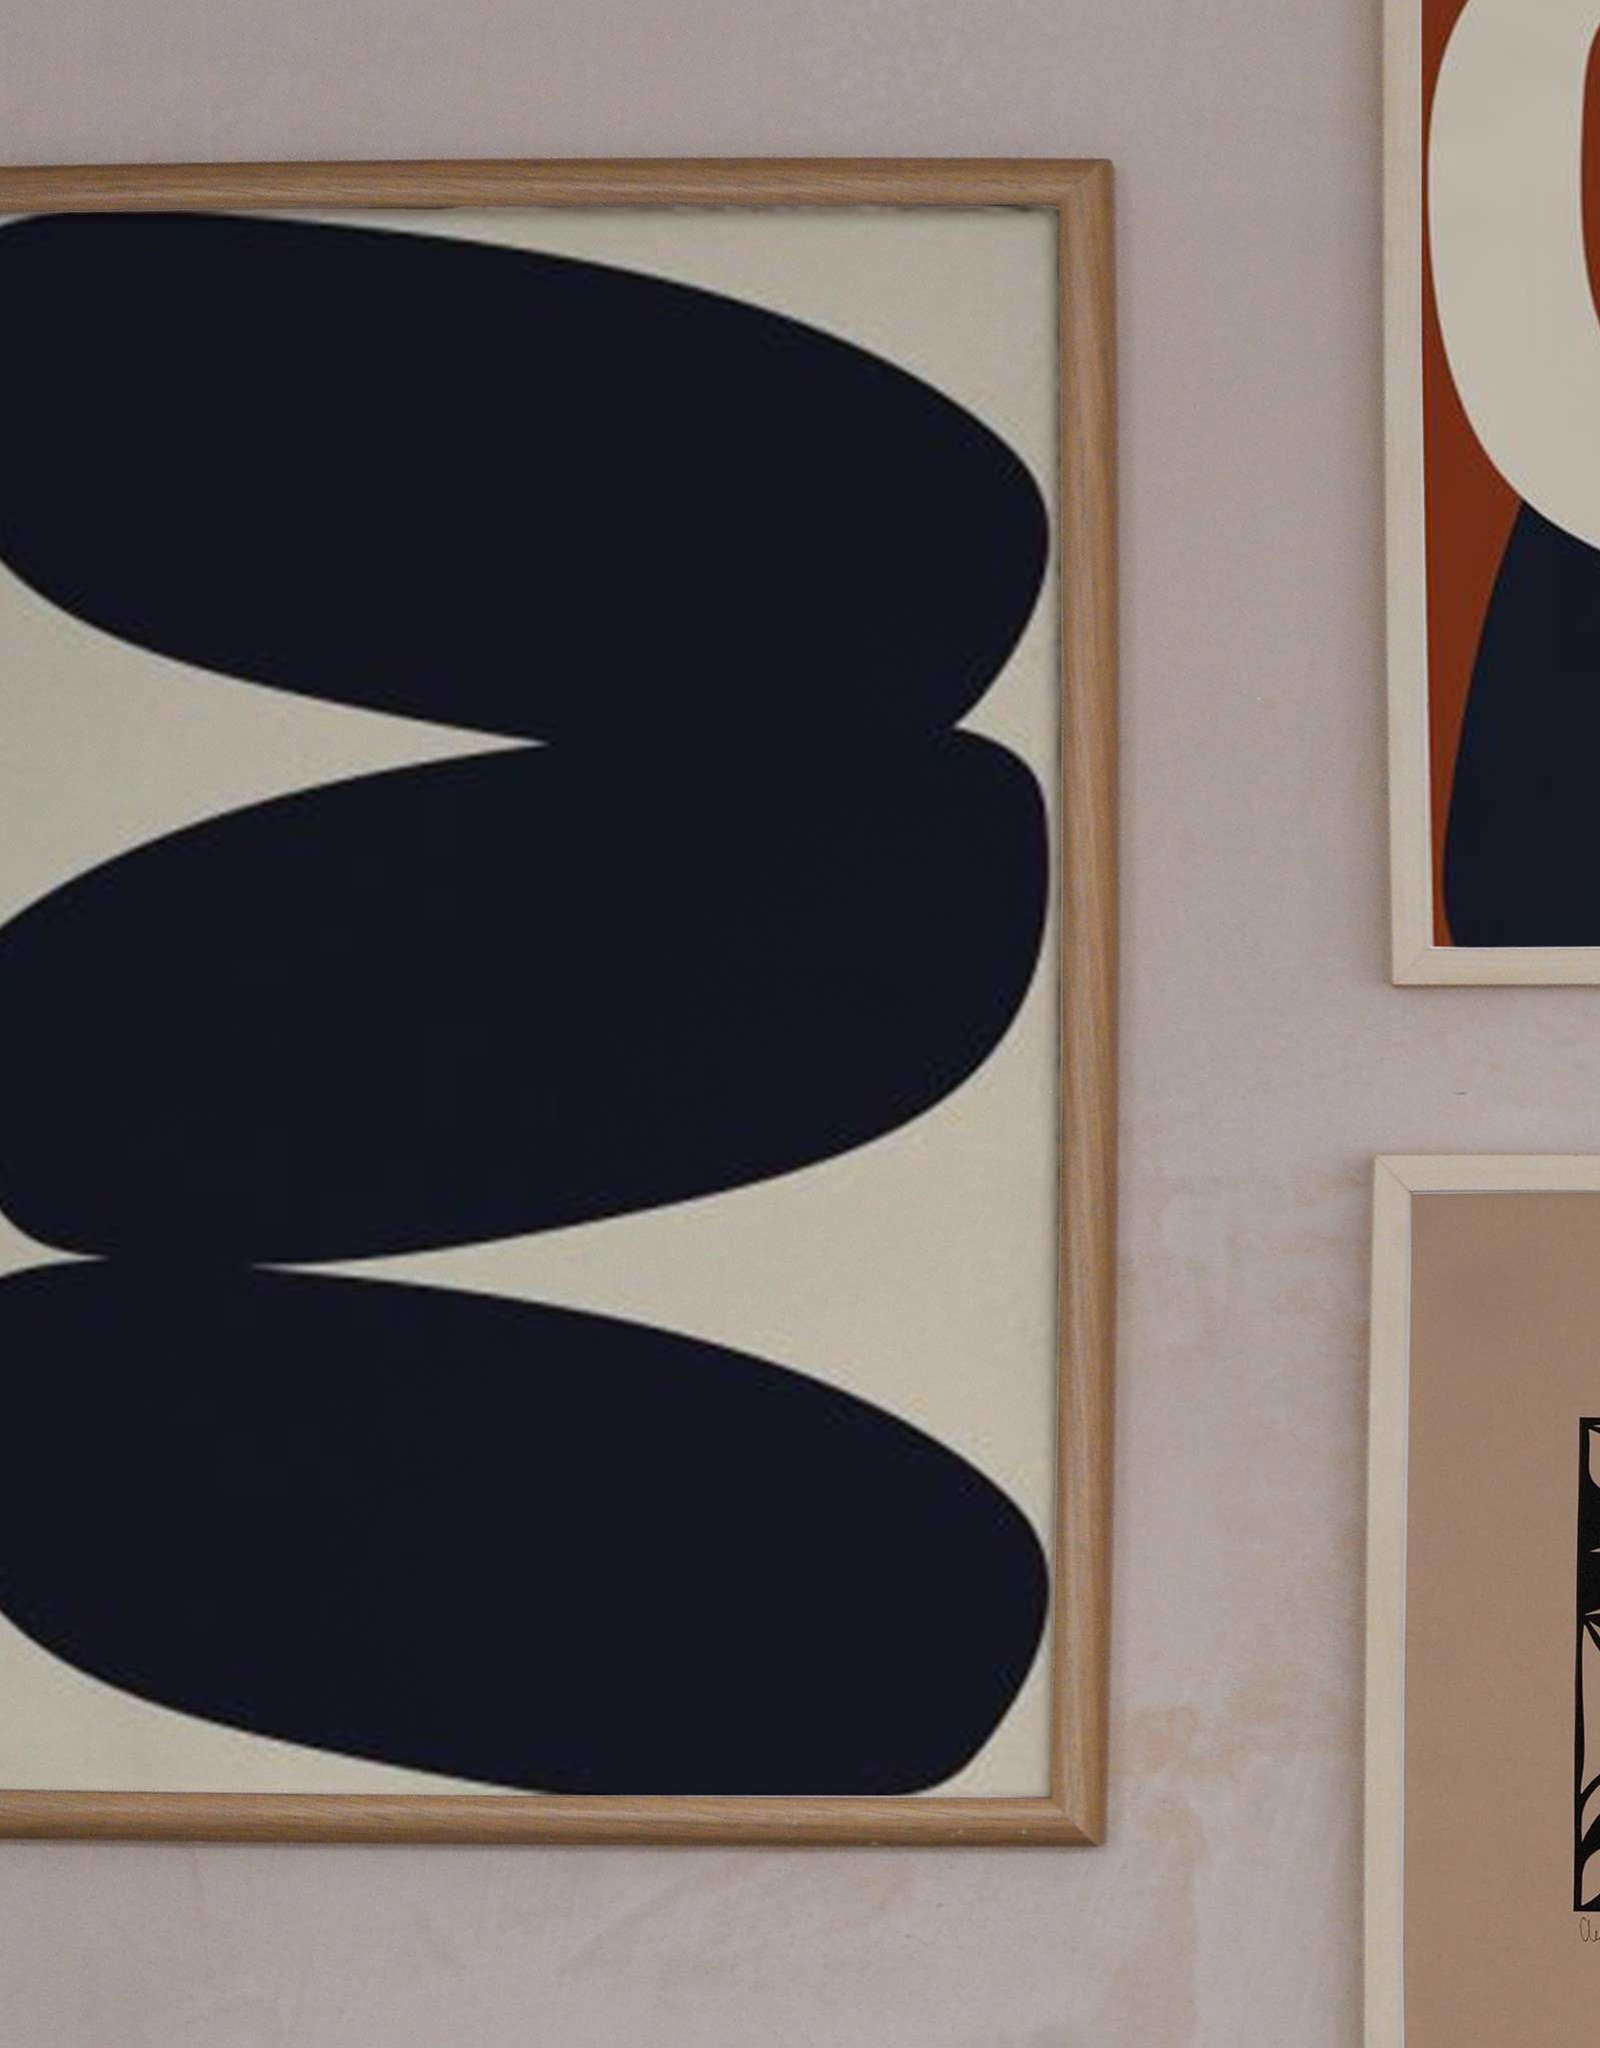 Paper Collective Paper Collective Poster Nina Bruun Solid Shapes 01 50x70cxm